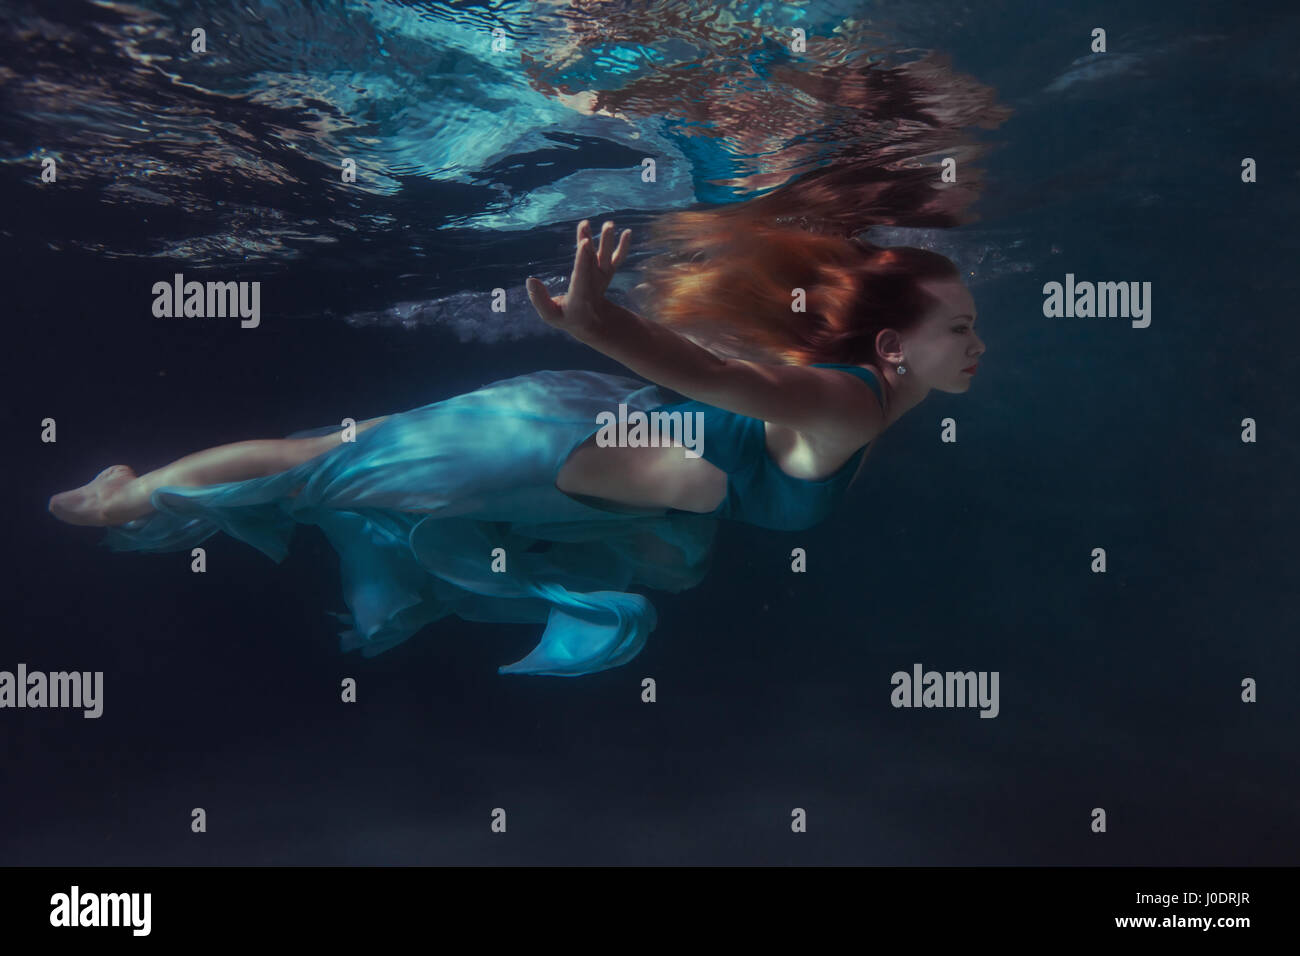 Woman in a dress swims under water, her hair develop in water. - Stock Image